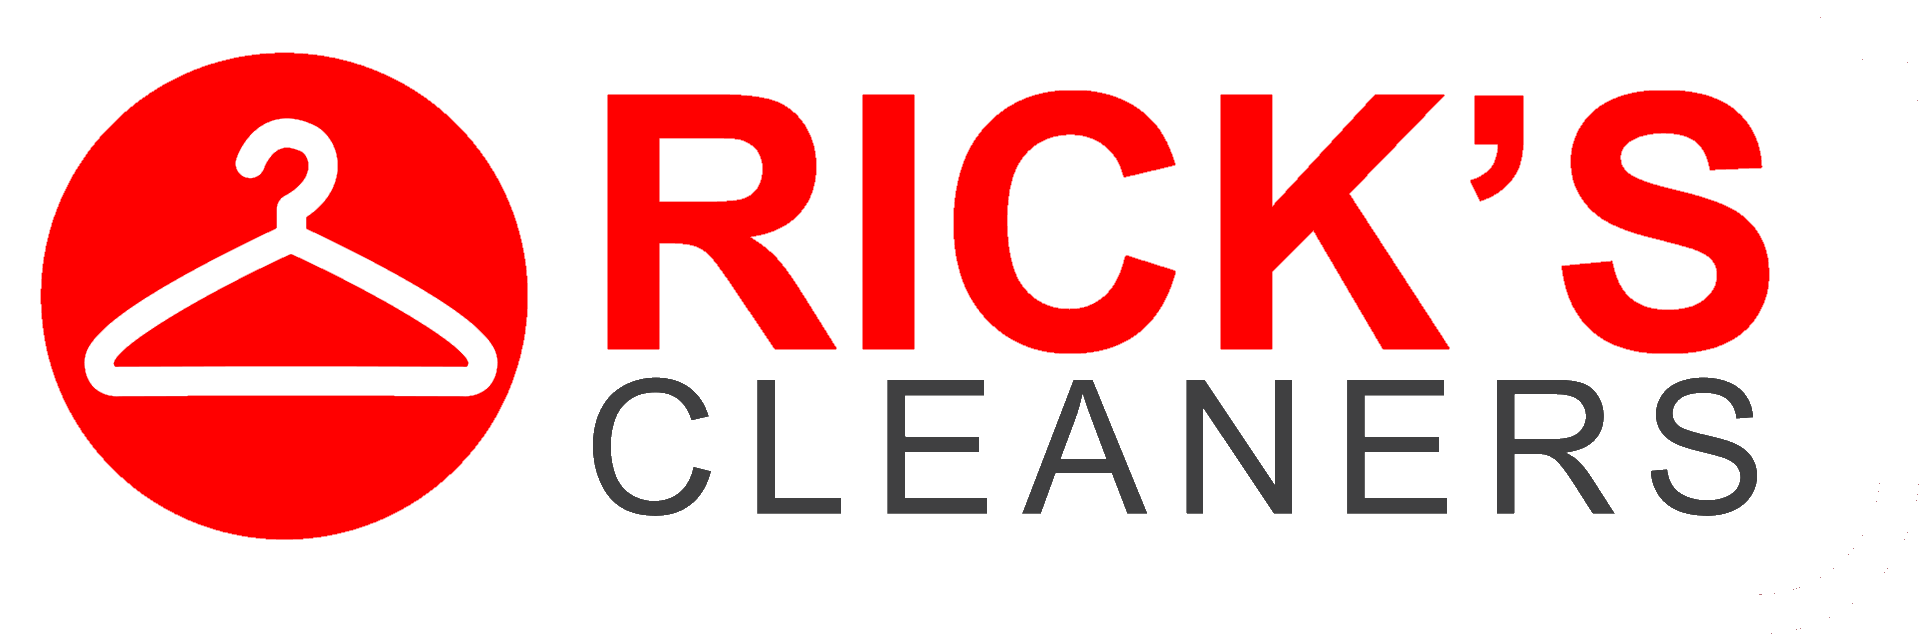 Rick's-Cleaners-Logo.png